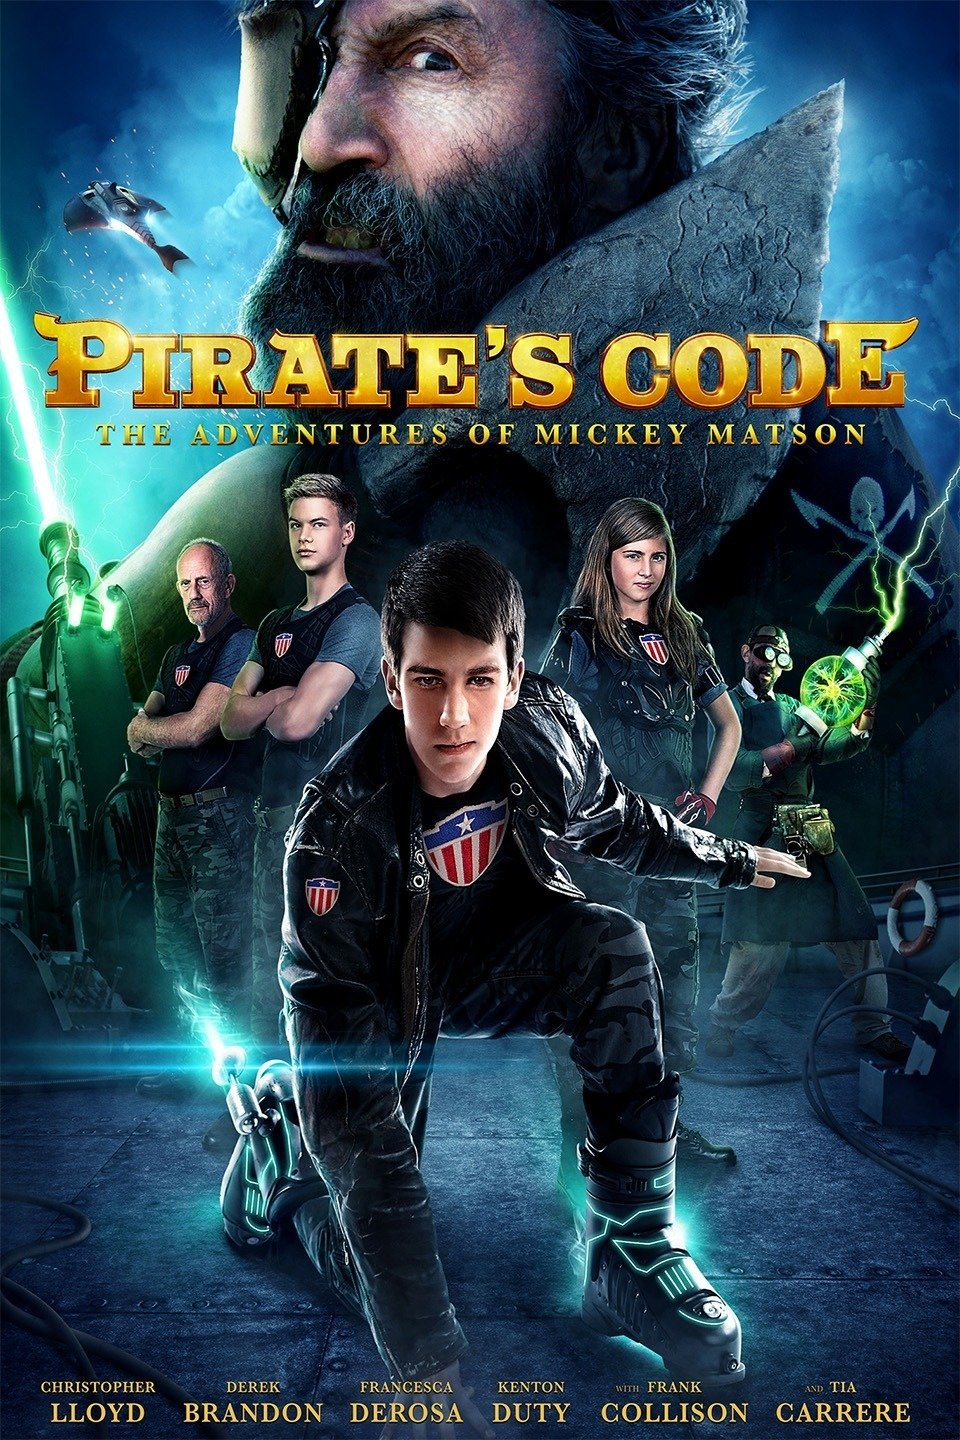 Pirate's Code: The Adventures of Mickey Matson-Pirate's Code: The Adventures of Mickey Matson